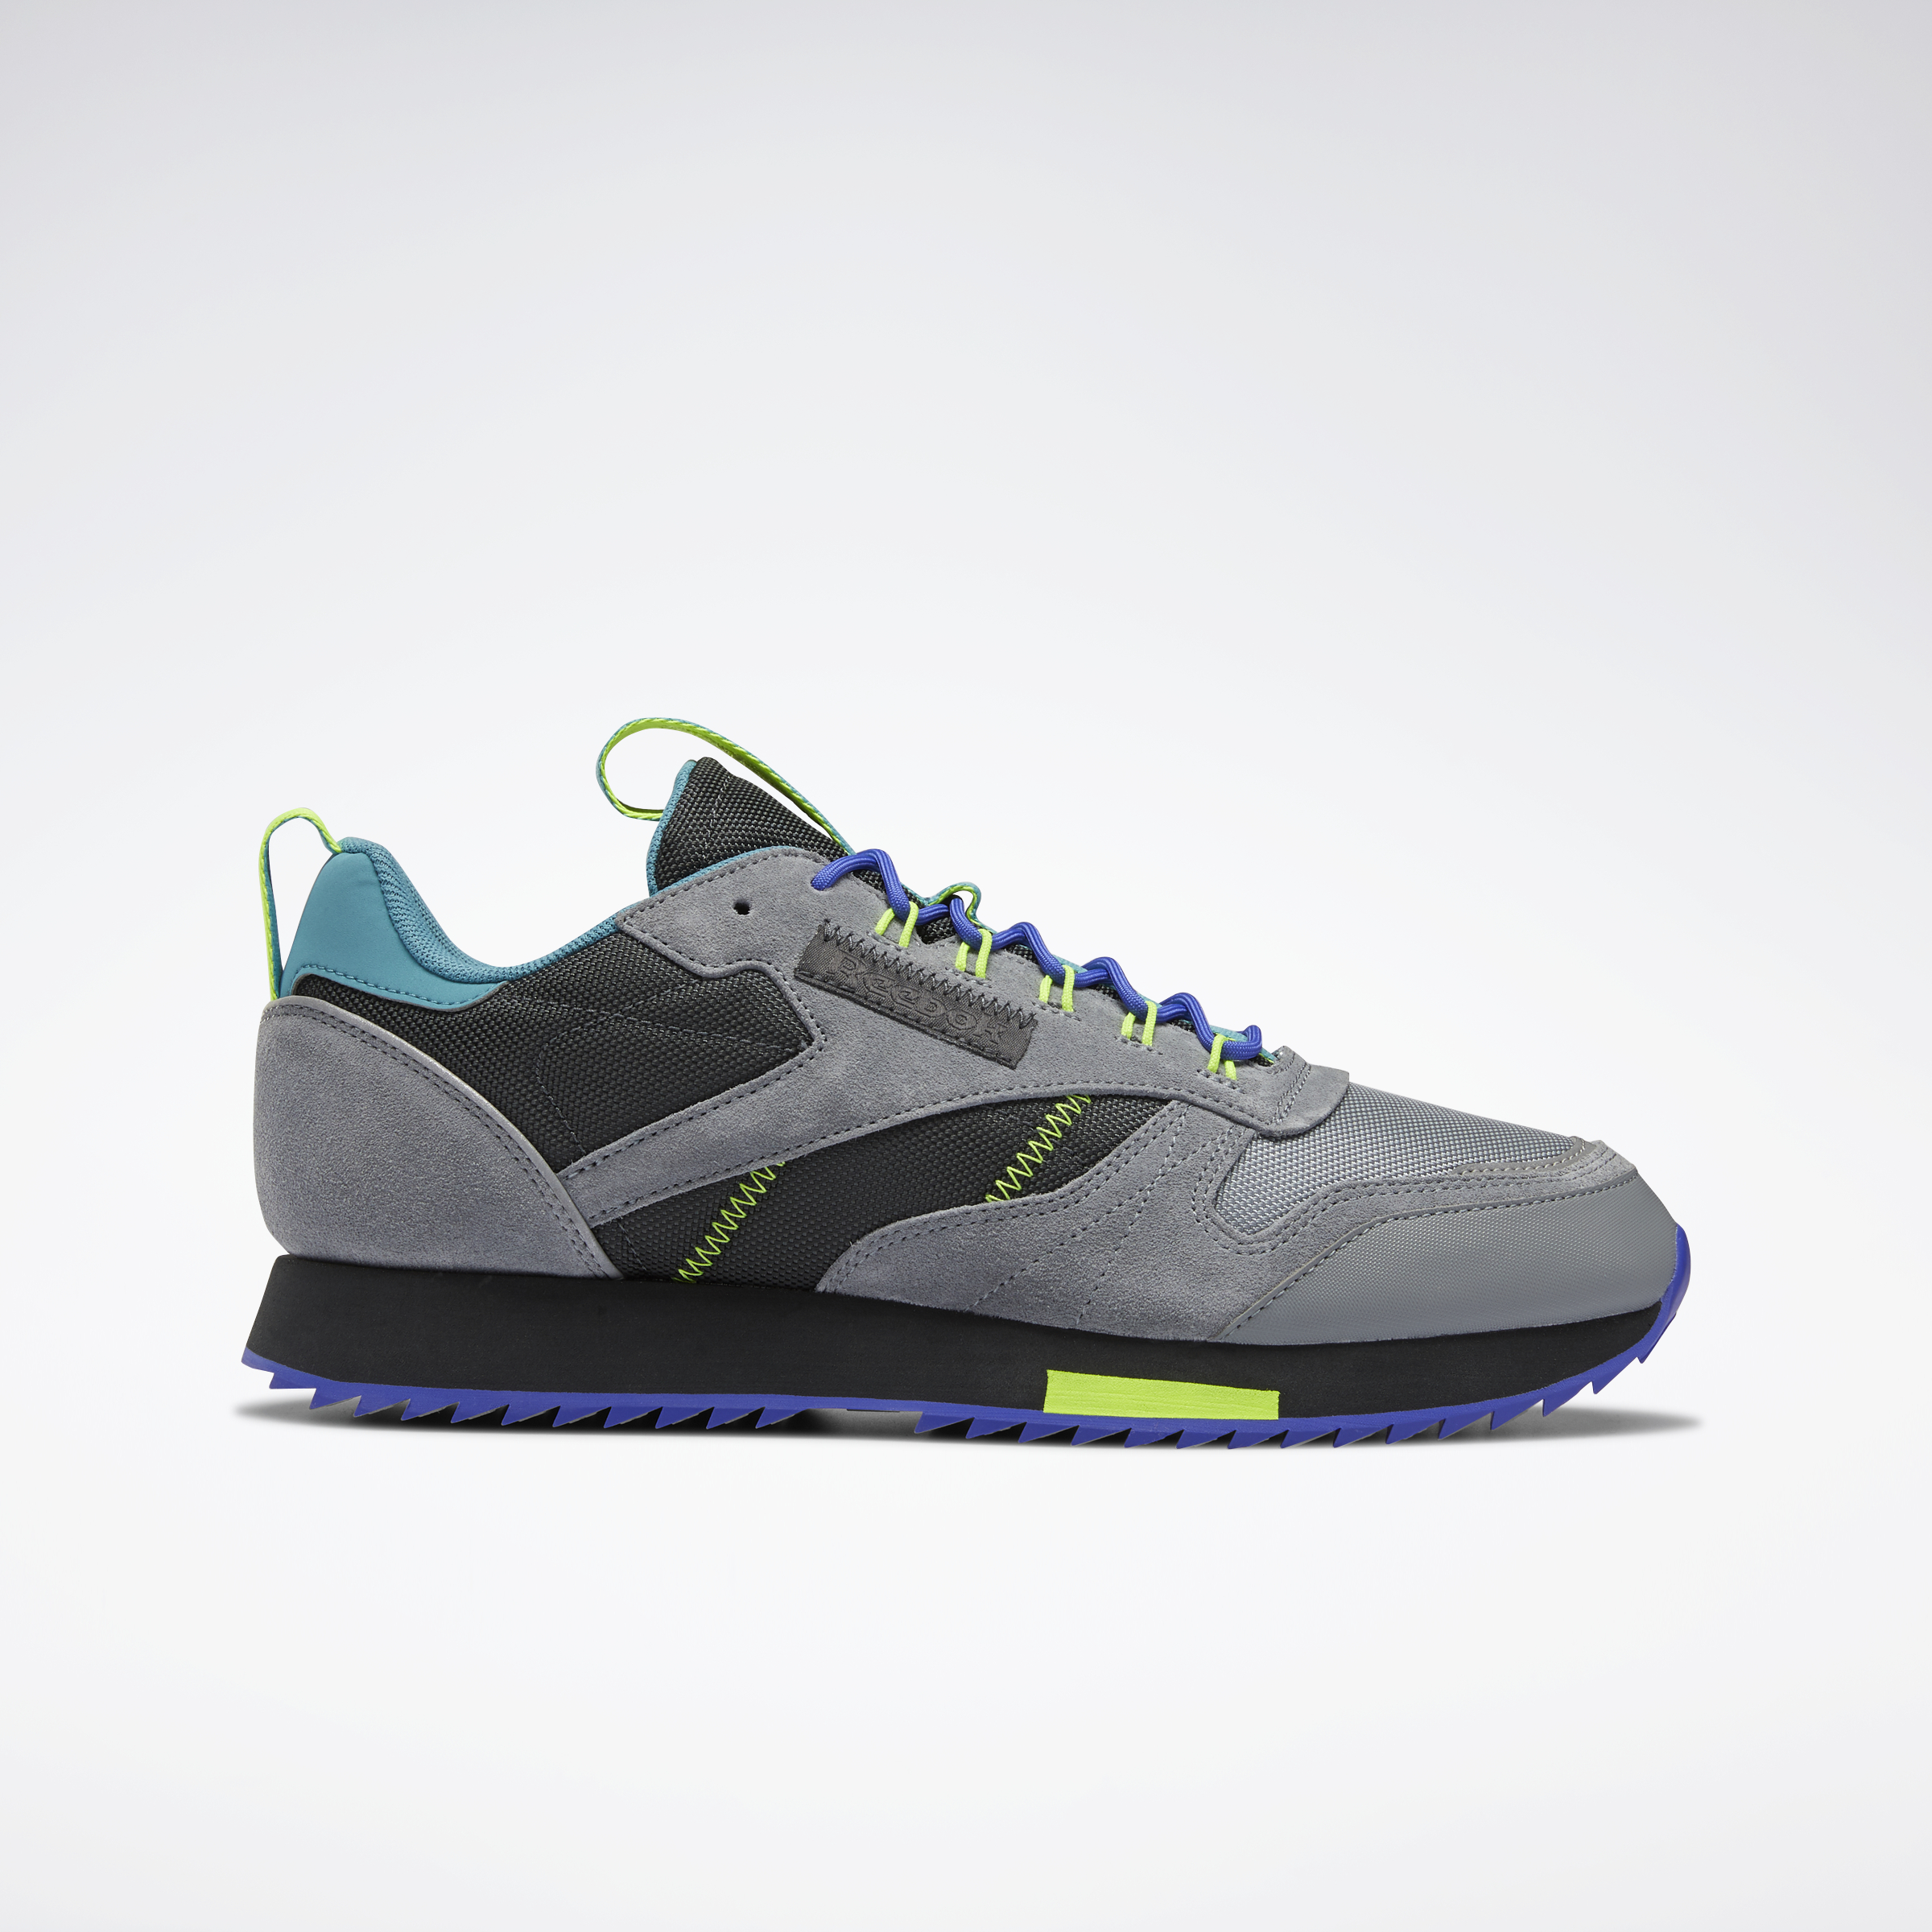 Reebok-Classic-Leather-Ripple-Trail-Men-039-s-Shoes thumbnail 10